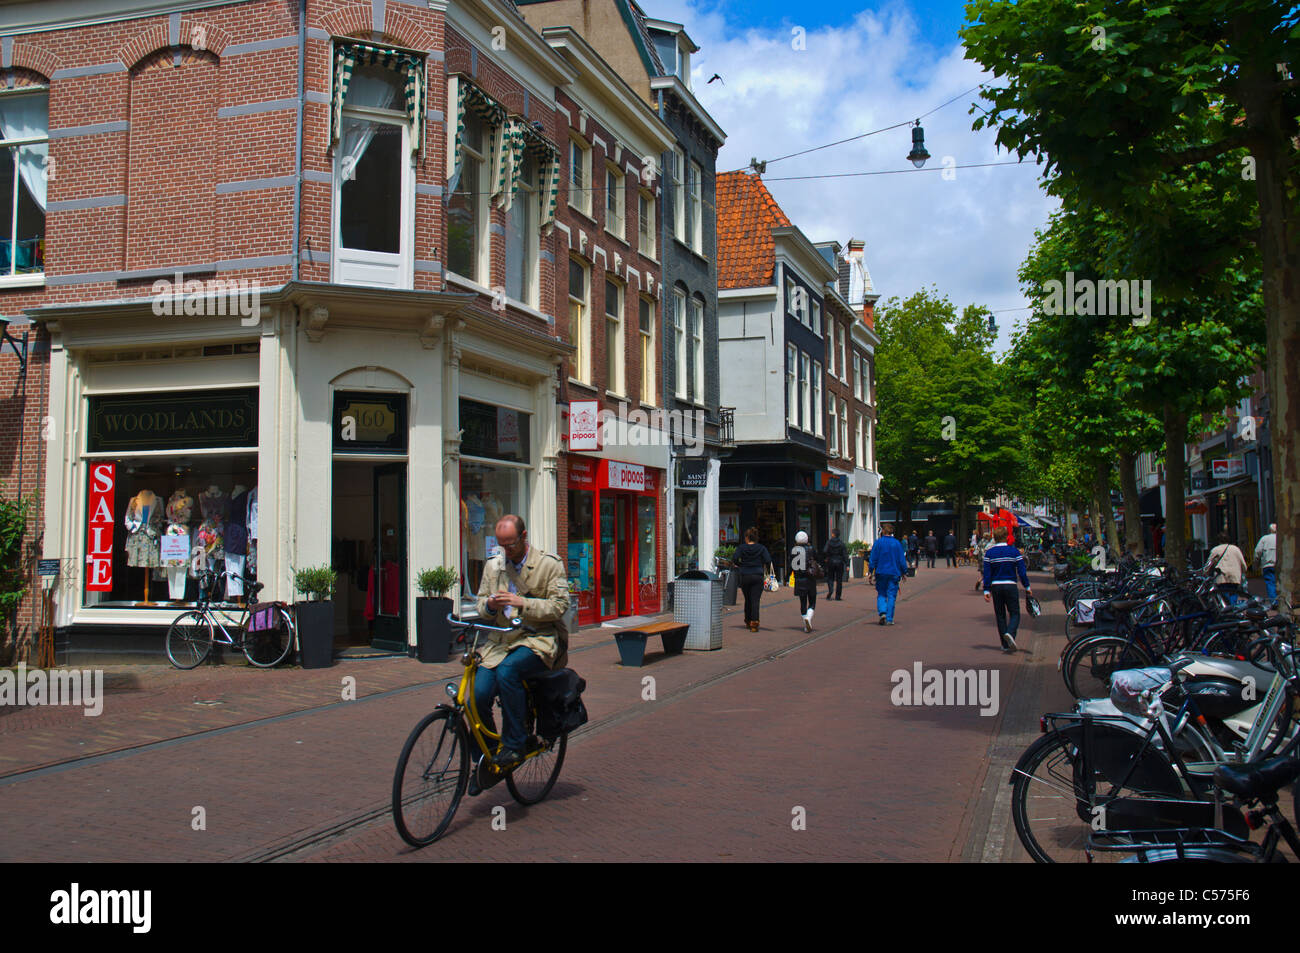 Man riding bike without hands while using mobile phone Grote Houtstraat street Haarlem town the Netherlands Europe - Stock Image